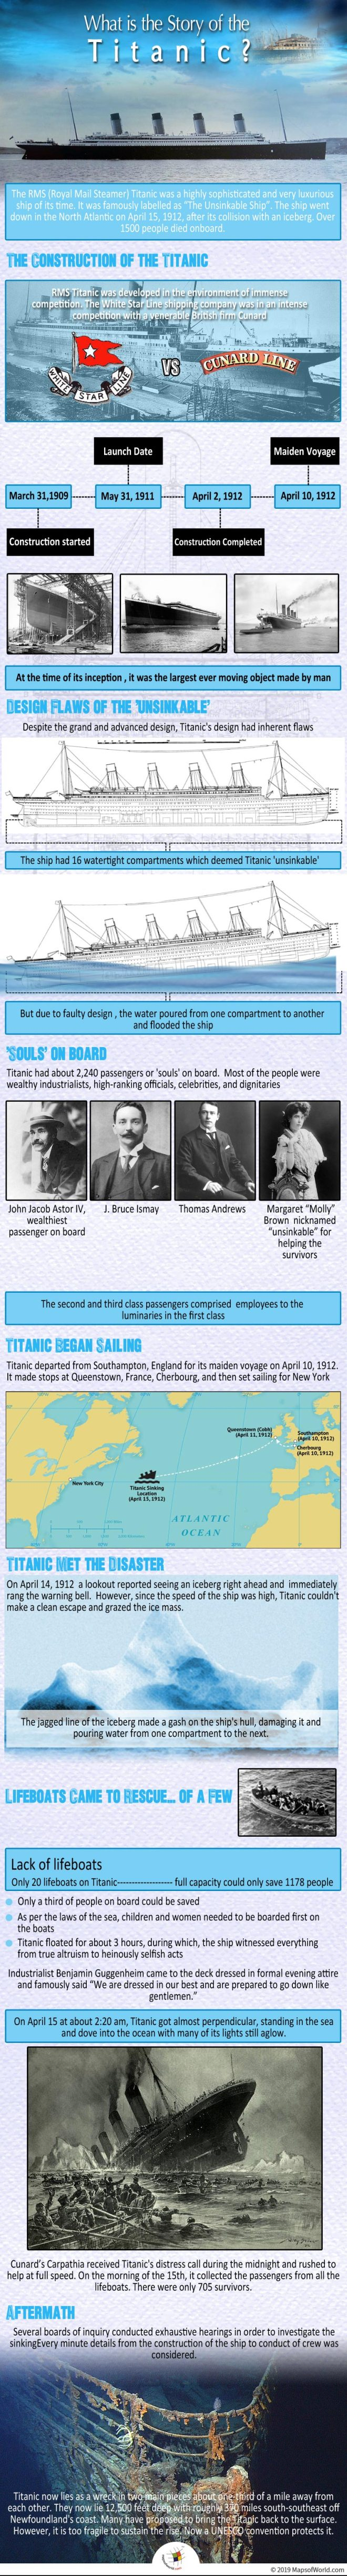 Infographic Shows The Story of Titanic